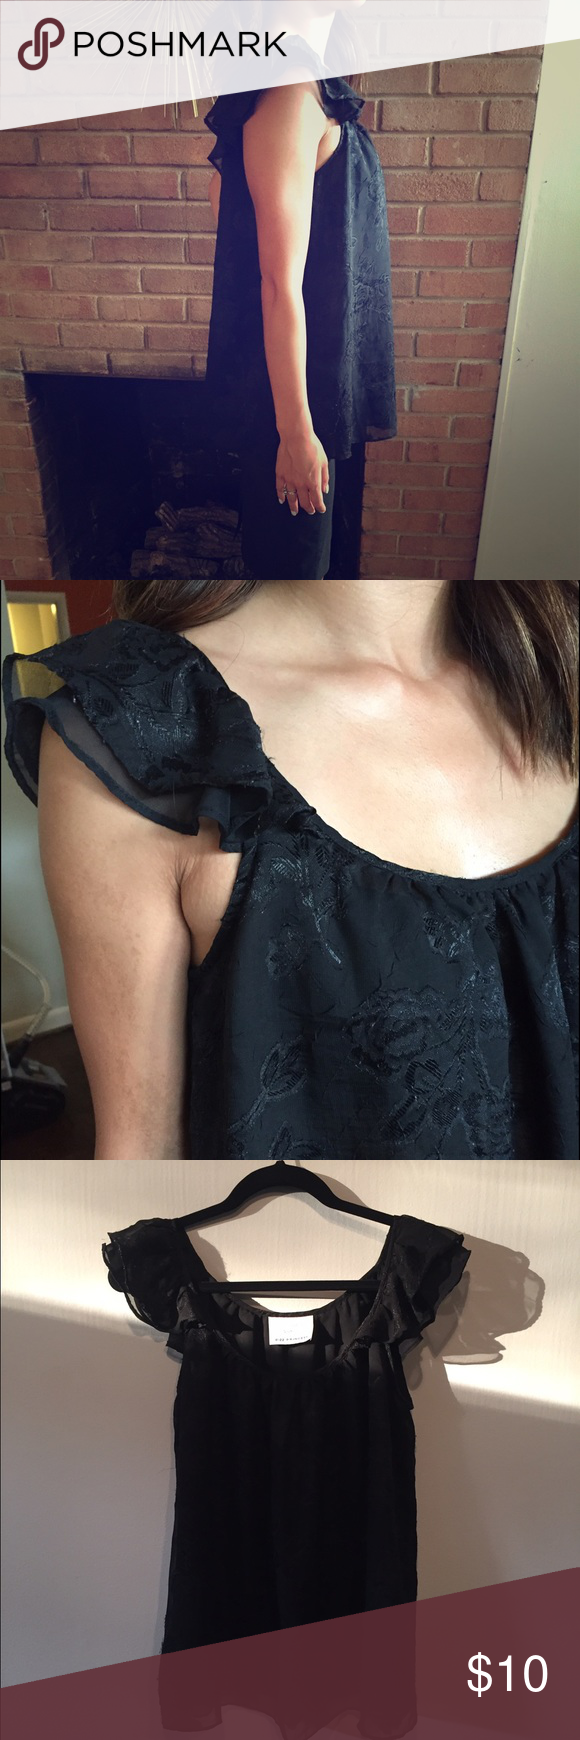 Boutique Floral Black Top Beautiful flower embroidered flowy top. You can dress it up or down. The fabric is slightly pilled, but it works for the style. You don't have to wear a tank underneath it since it has another layer underneath. Tops Blouses